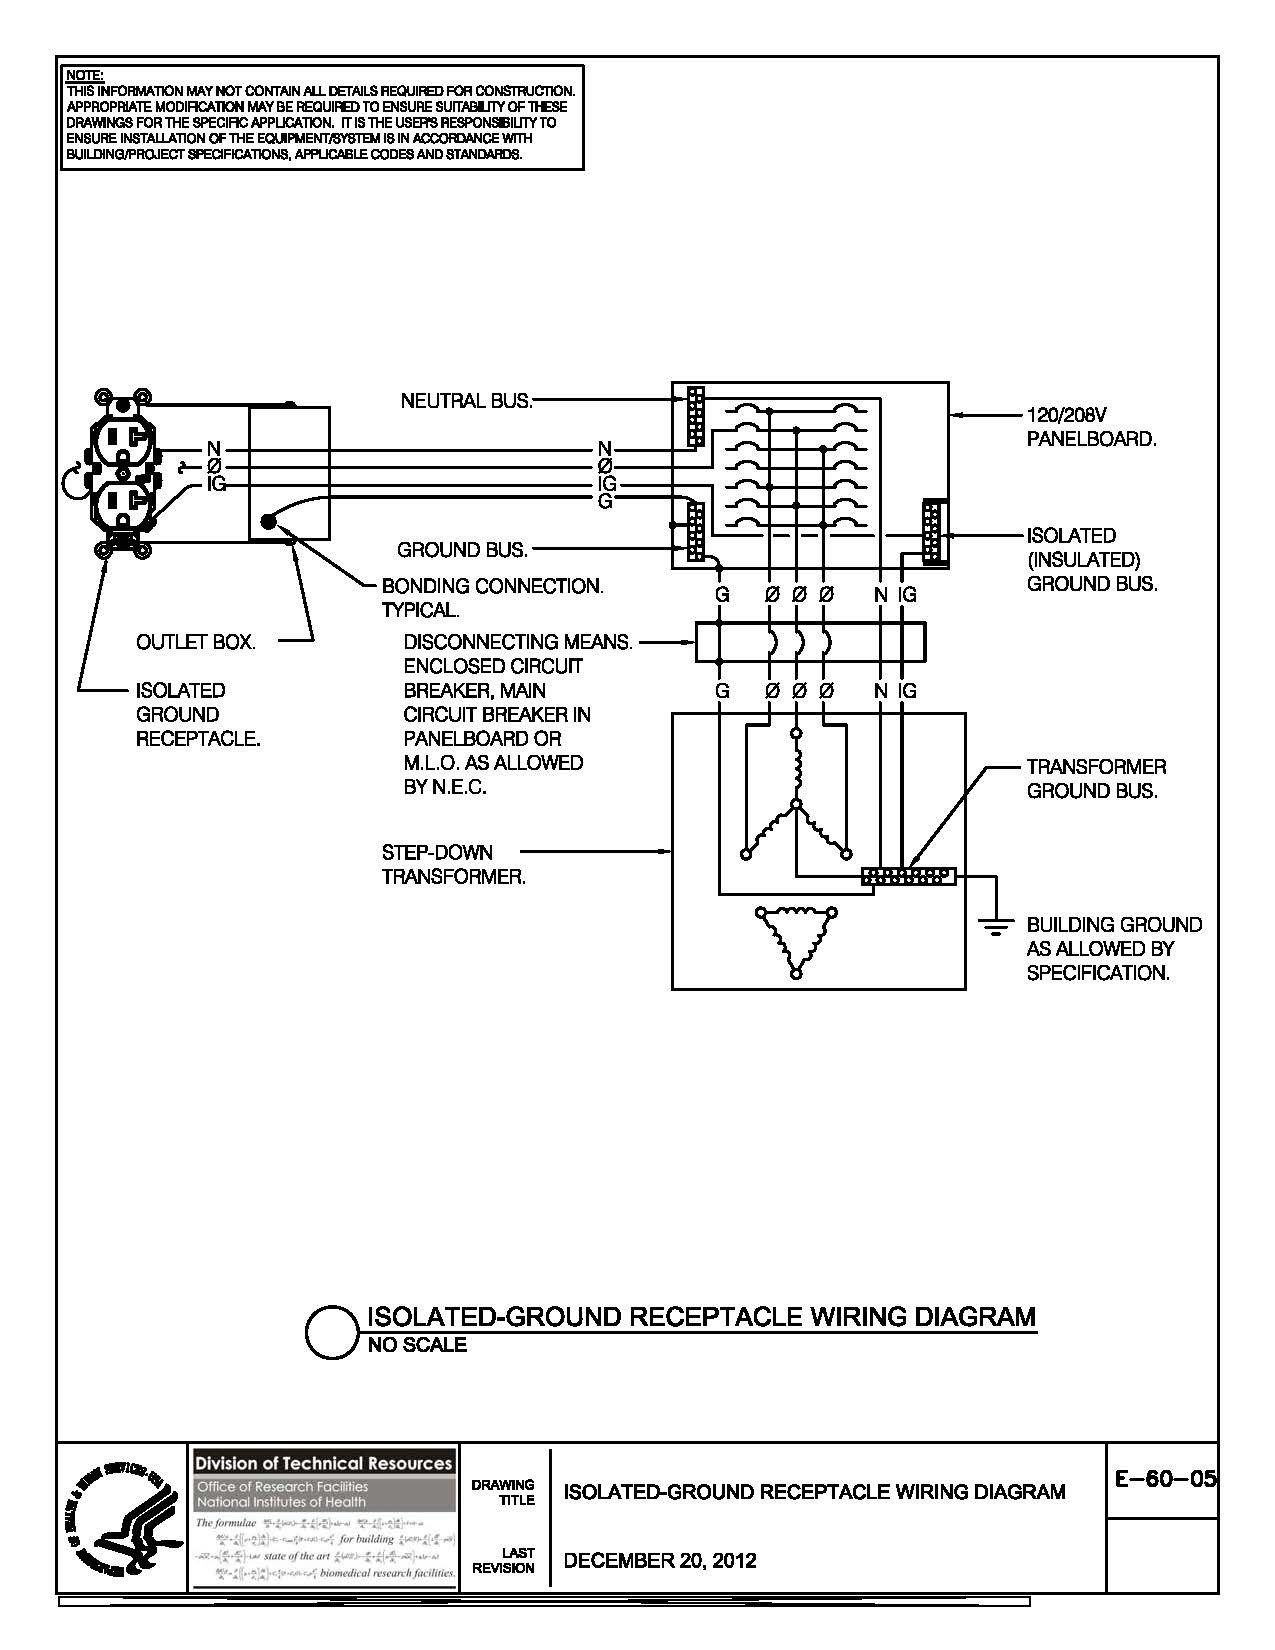 Jd Gator 4×2 Wiring Diagram 20 Fresh Waltco Liftgate Switch Wiring Diagram Of Jd Gator 4×2 Wiring Diagram